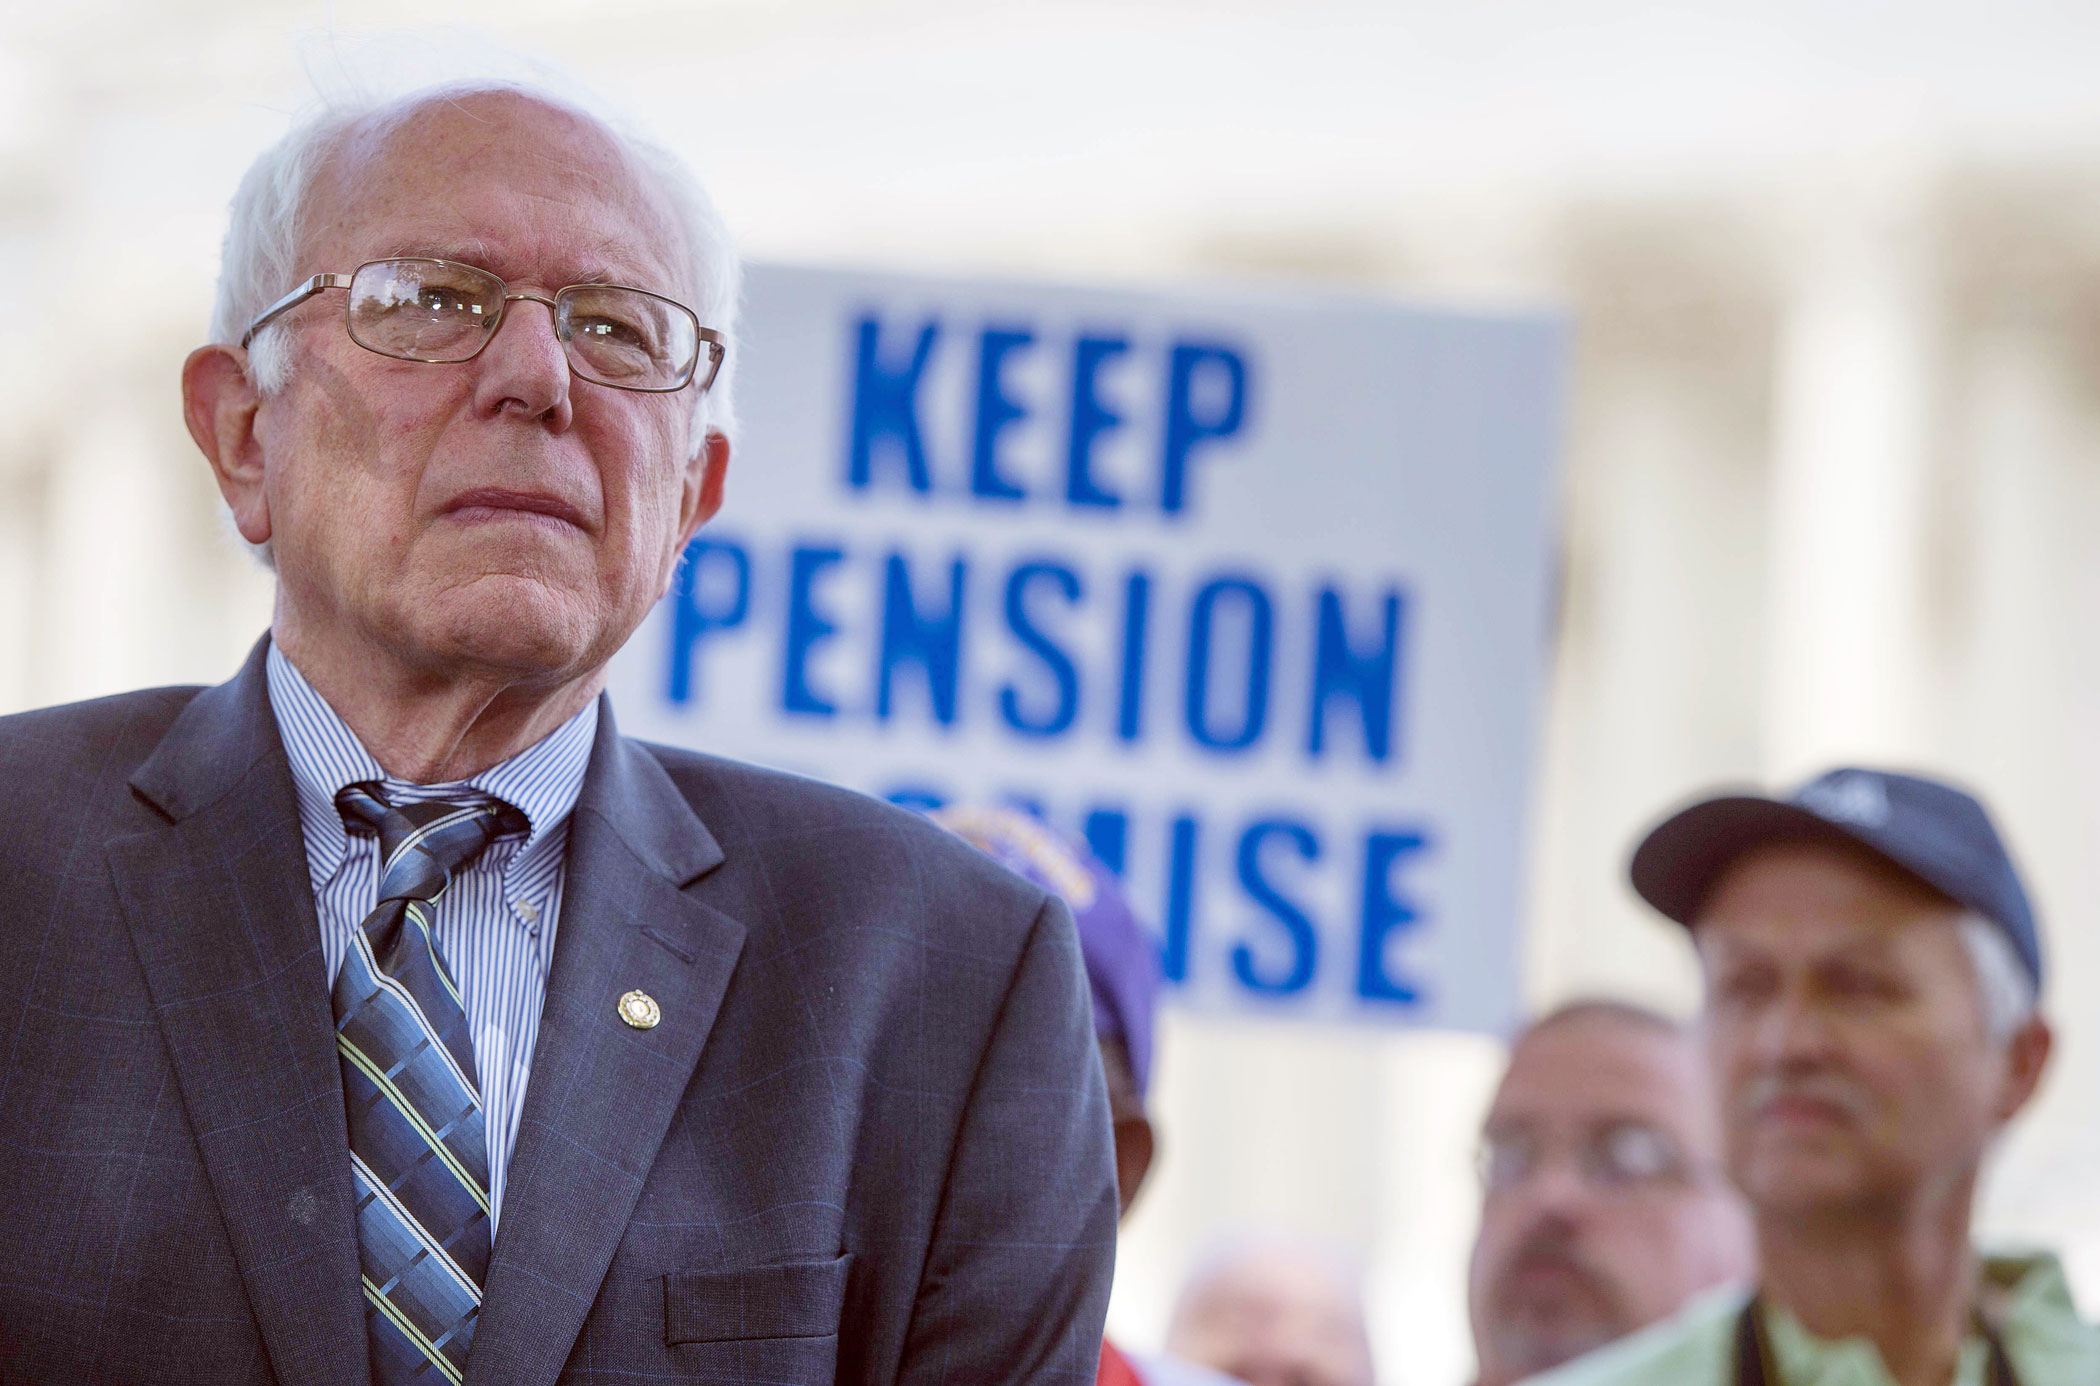 Bernie Sanders speaks during a news conference to discuss legislation to restore pension guarantees for thousands of retired union workers  on June 18, 2015 in Washington.